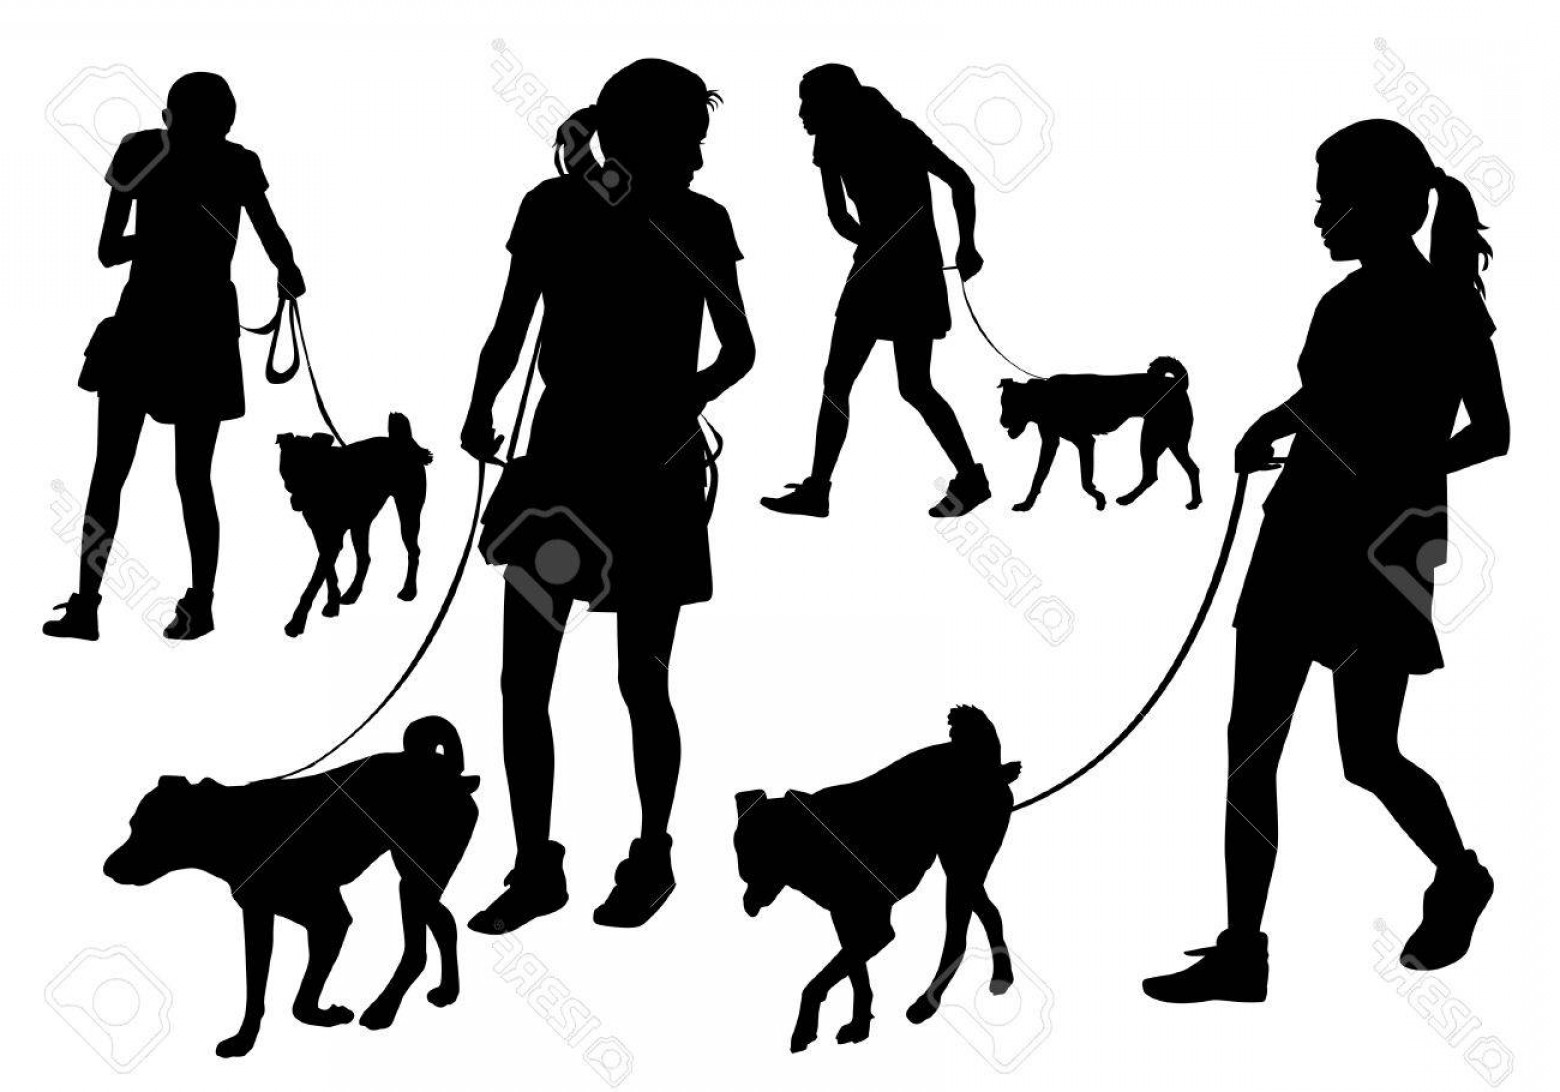 Vector Silhouette Dog Walk: Photostock Vector Girl Walking With A Dog On A Leash Silhouette On A White Background